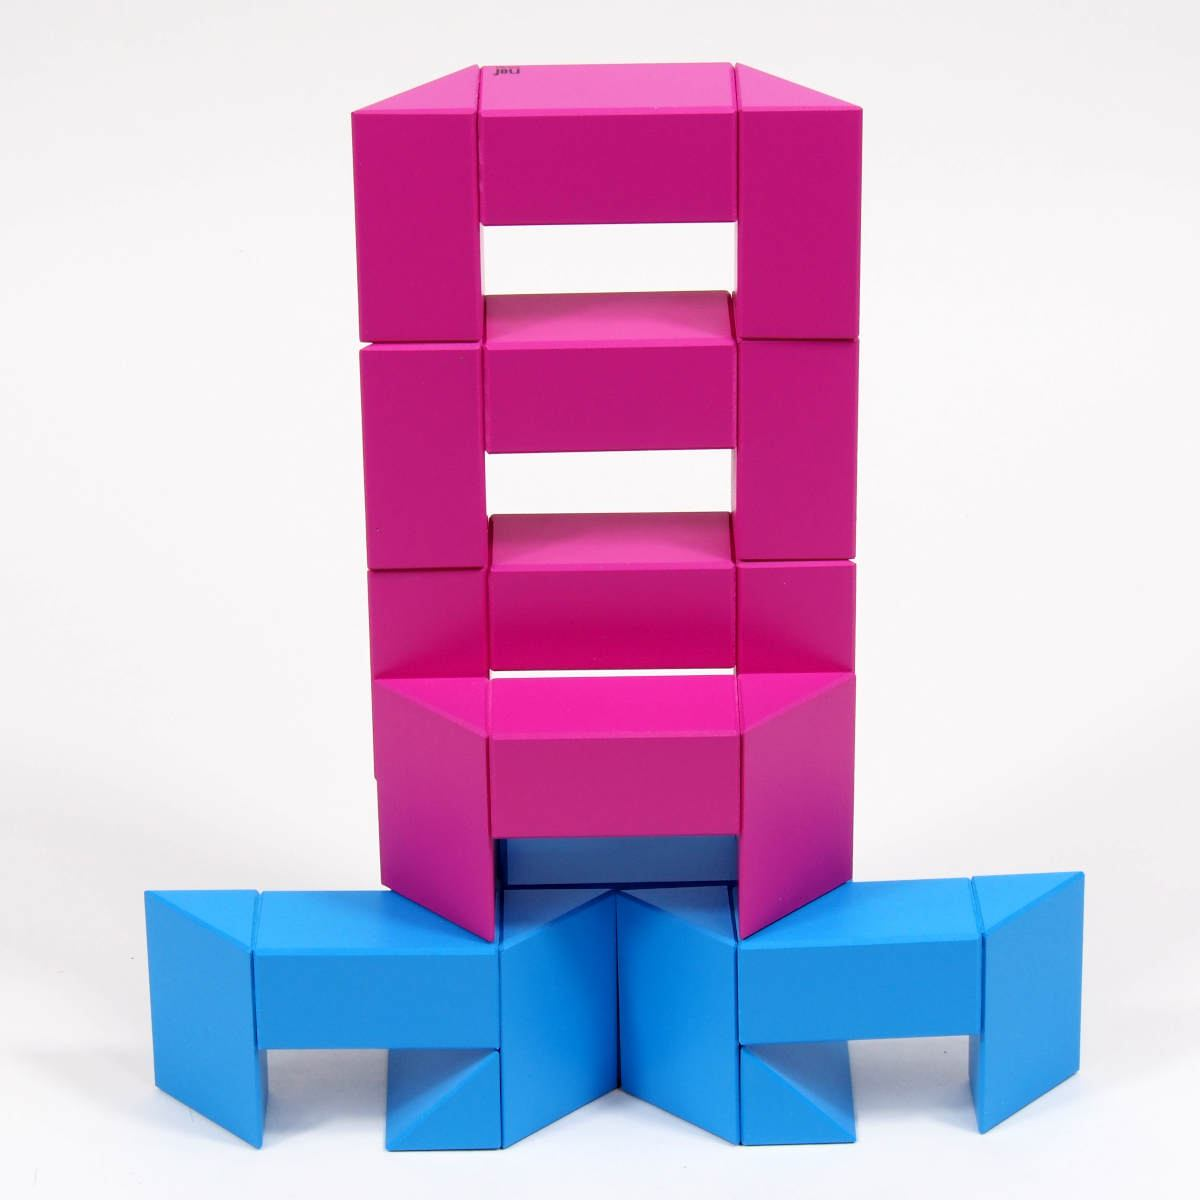 Construction toy Ponte (magenta / blue) by Naef Spiele, Switzerland